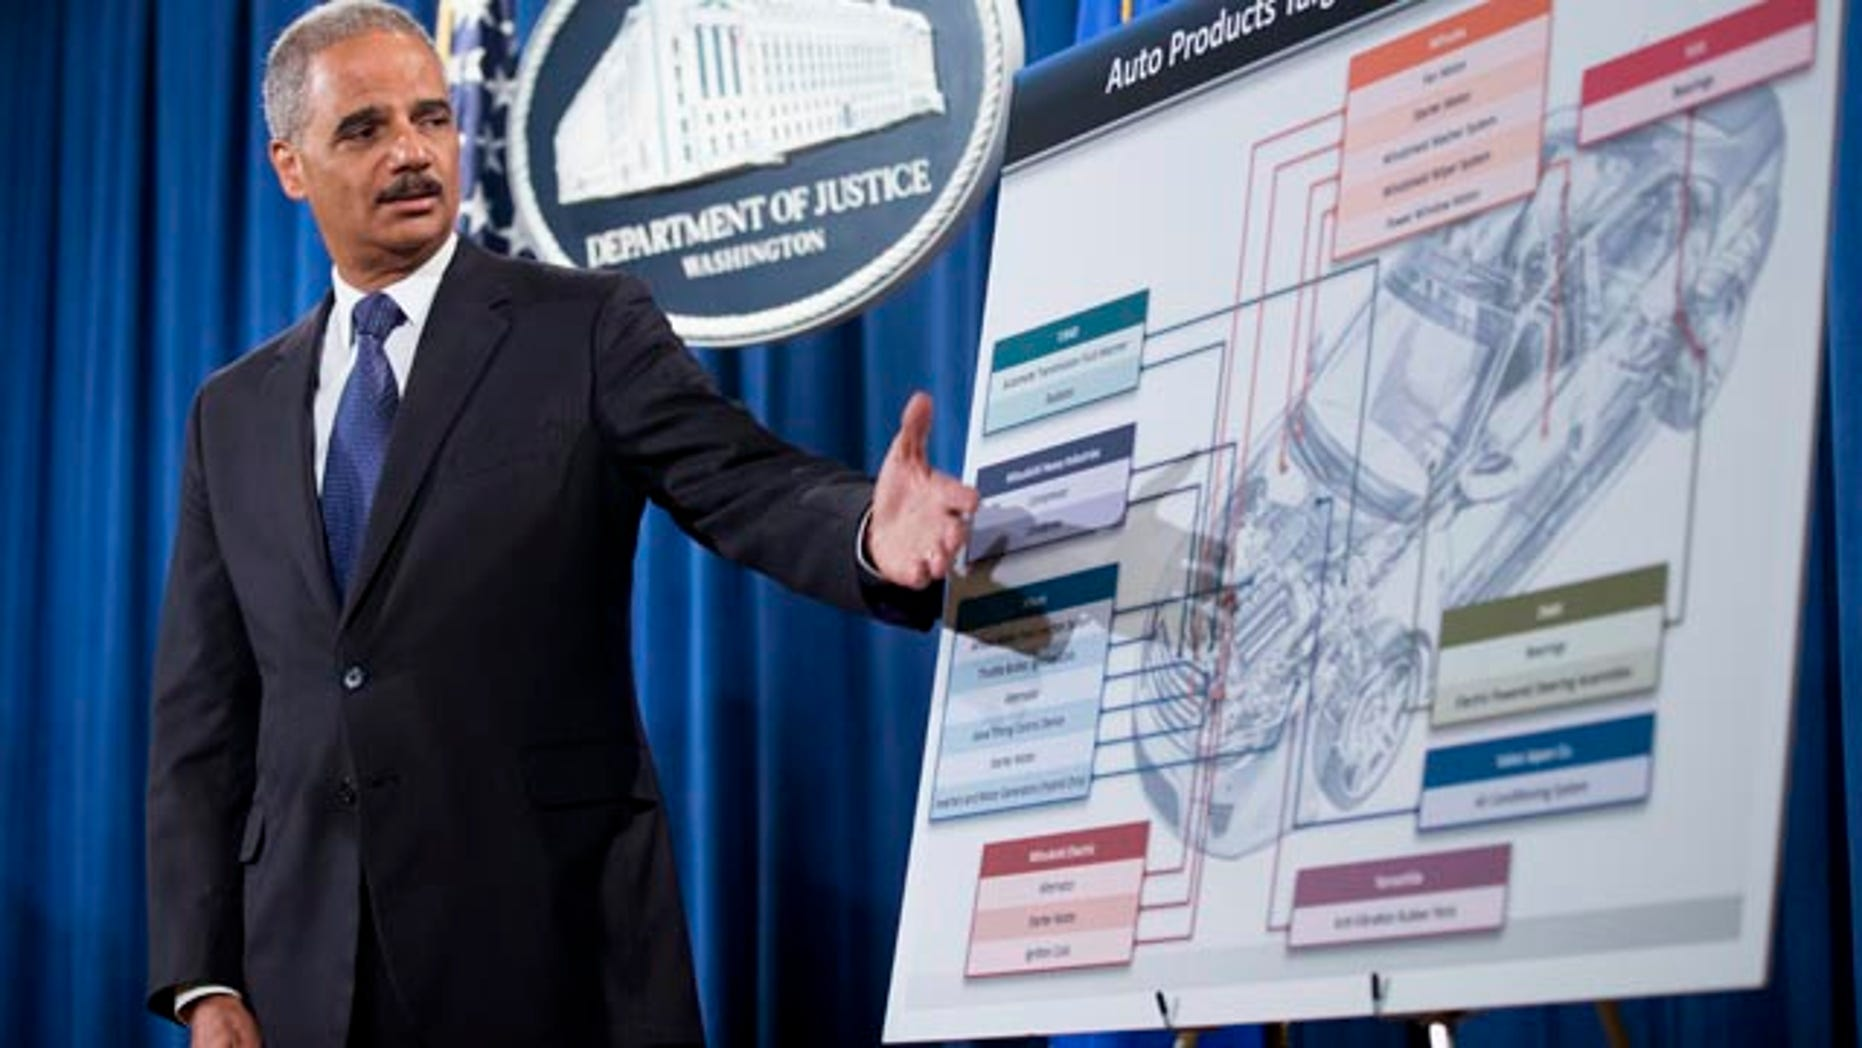 FILE - This Sept. 26, 2013 file photo shows Attorney General Eric Holder pointing to an illustrations of the auto parts during a news conference at the Justice Department in Washington. (AP Photo/Manuel Balce Ceneta, File)